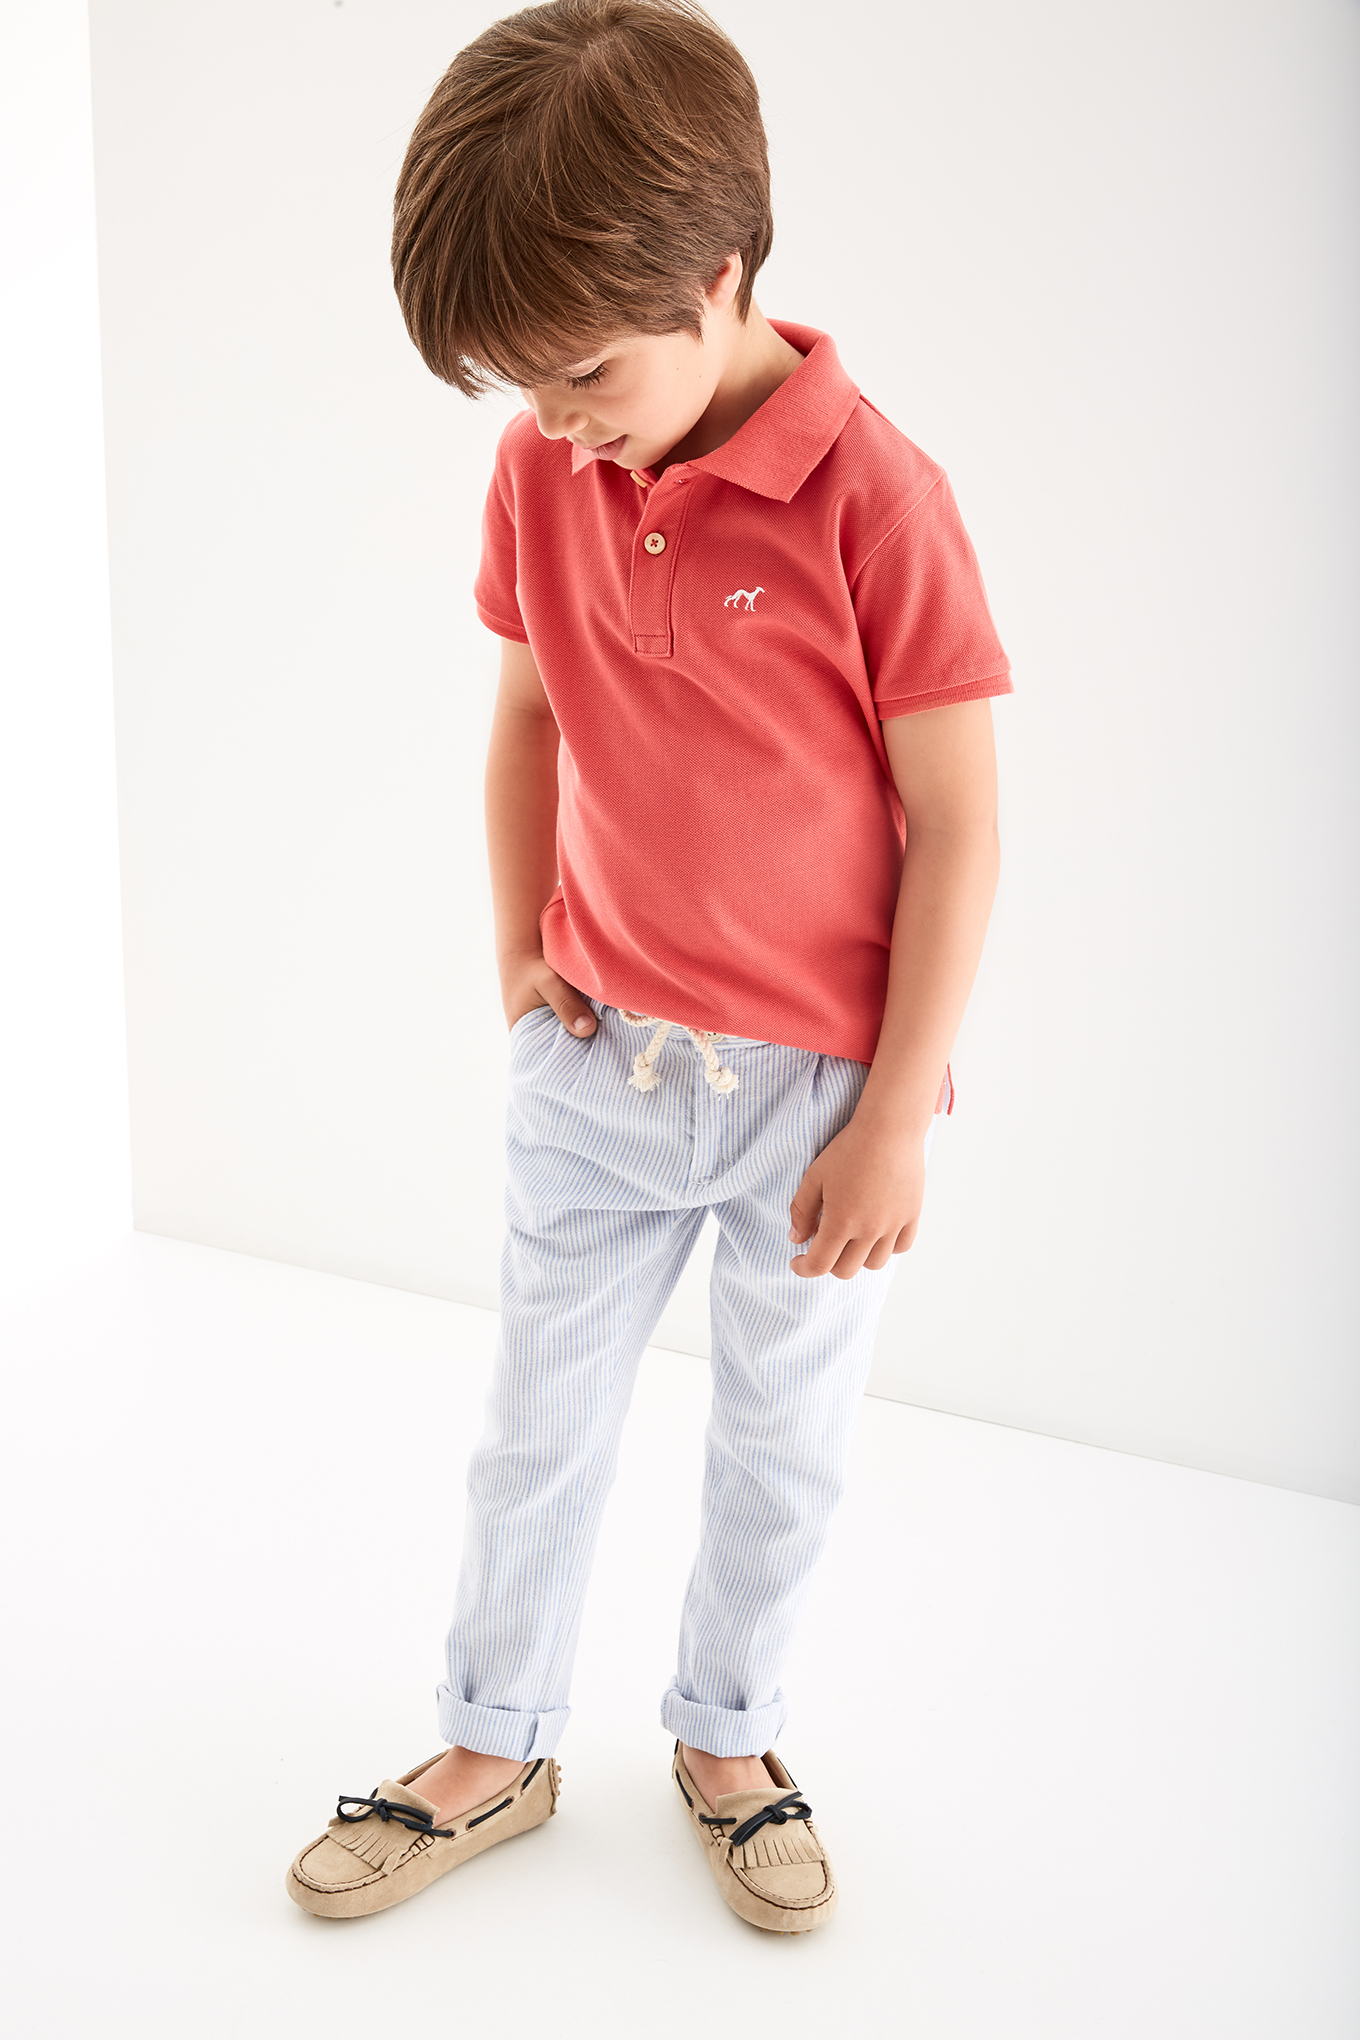 Polo Piquet Color 1 Sport Boy